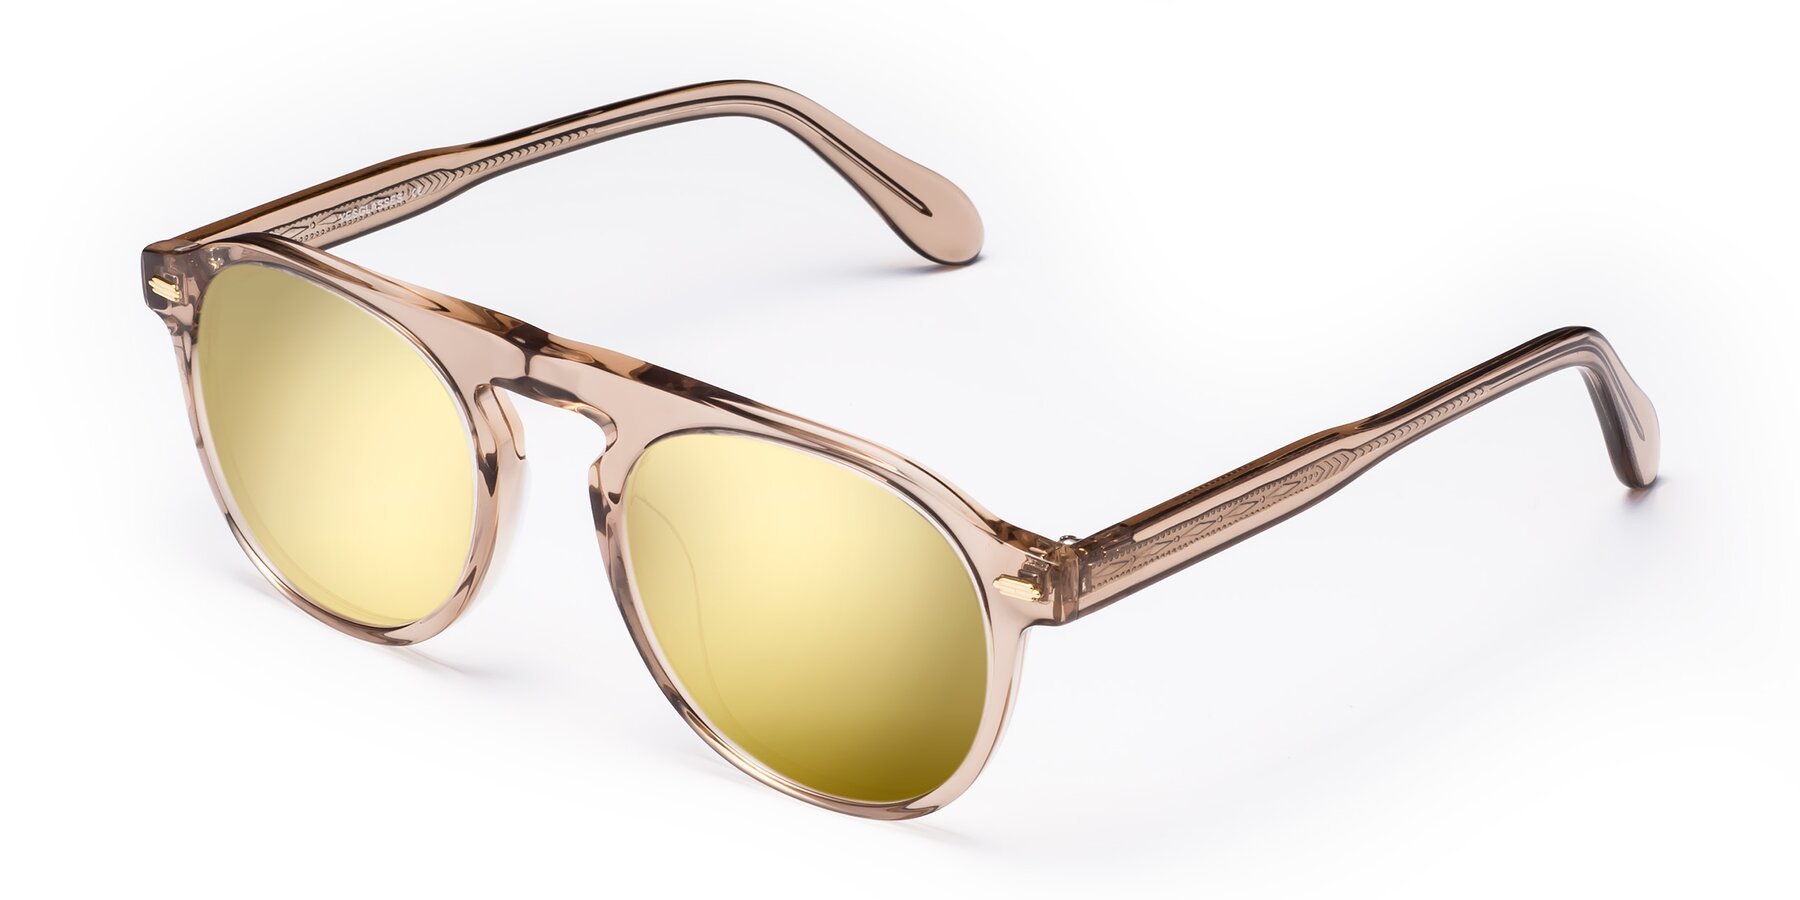 Angle of Mufasa in light Brown with Gold Mirrored Lenses